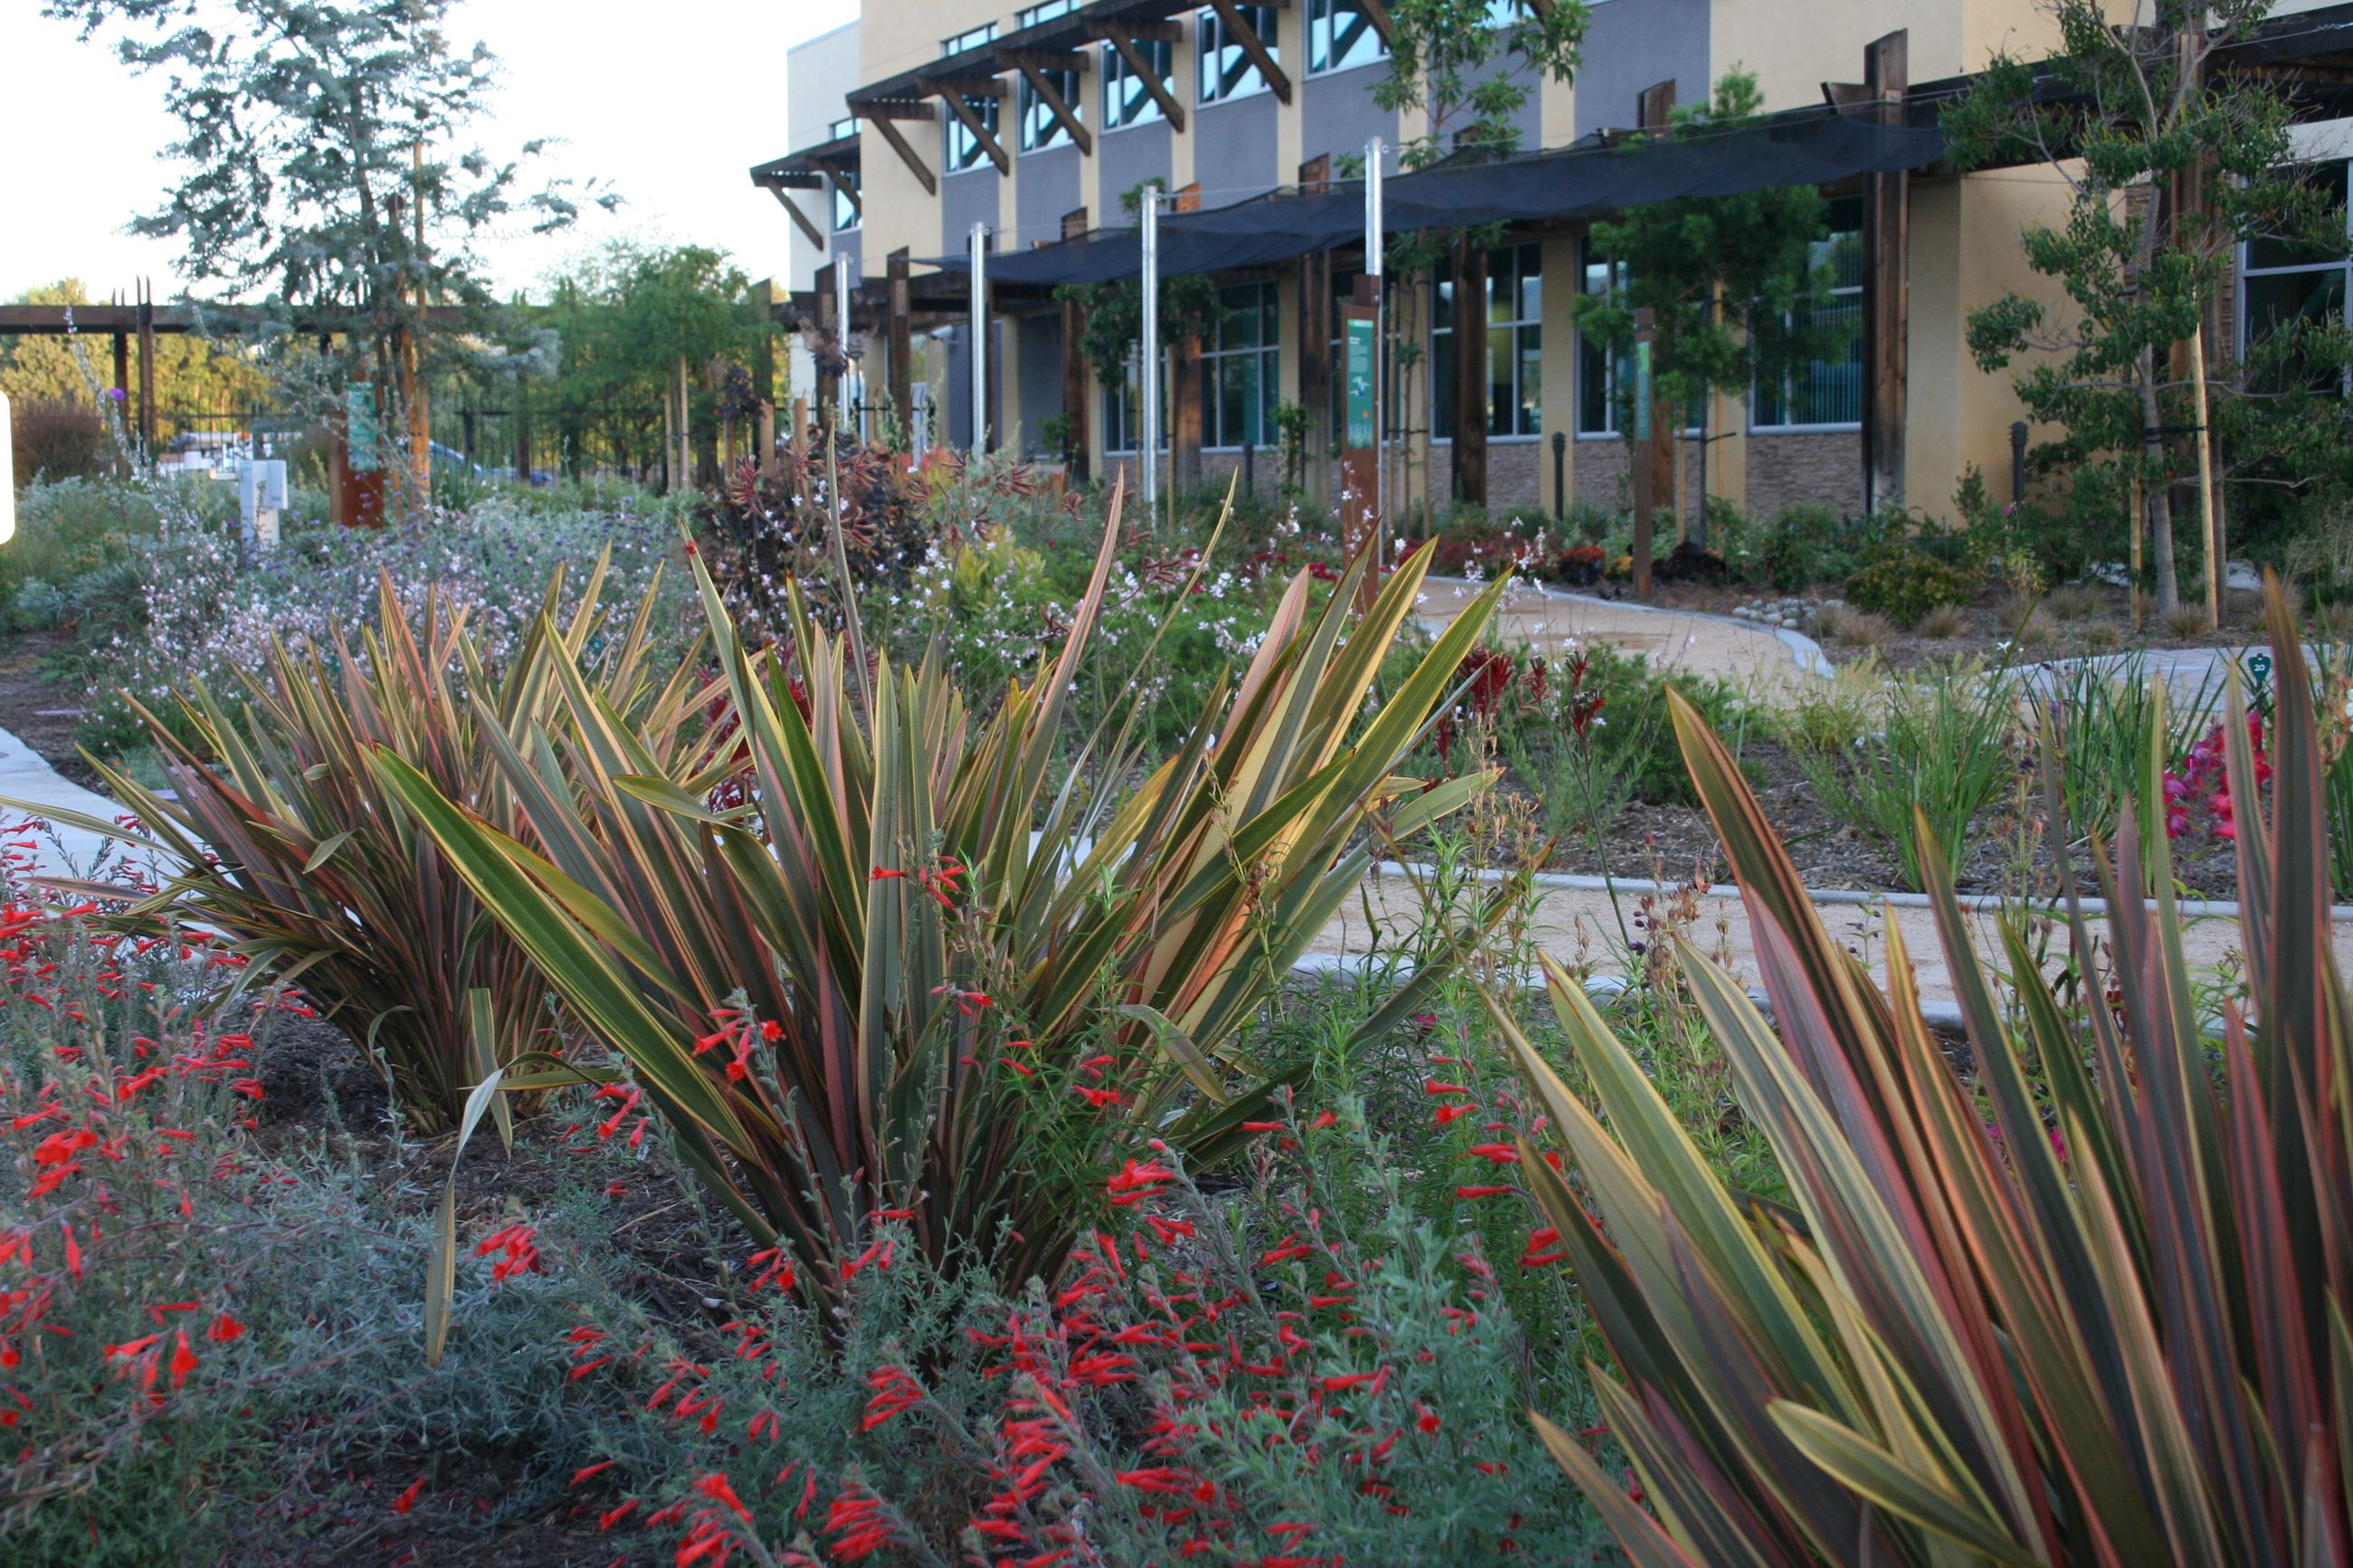 Image of plants in the Conservation Garden in front of building